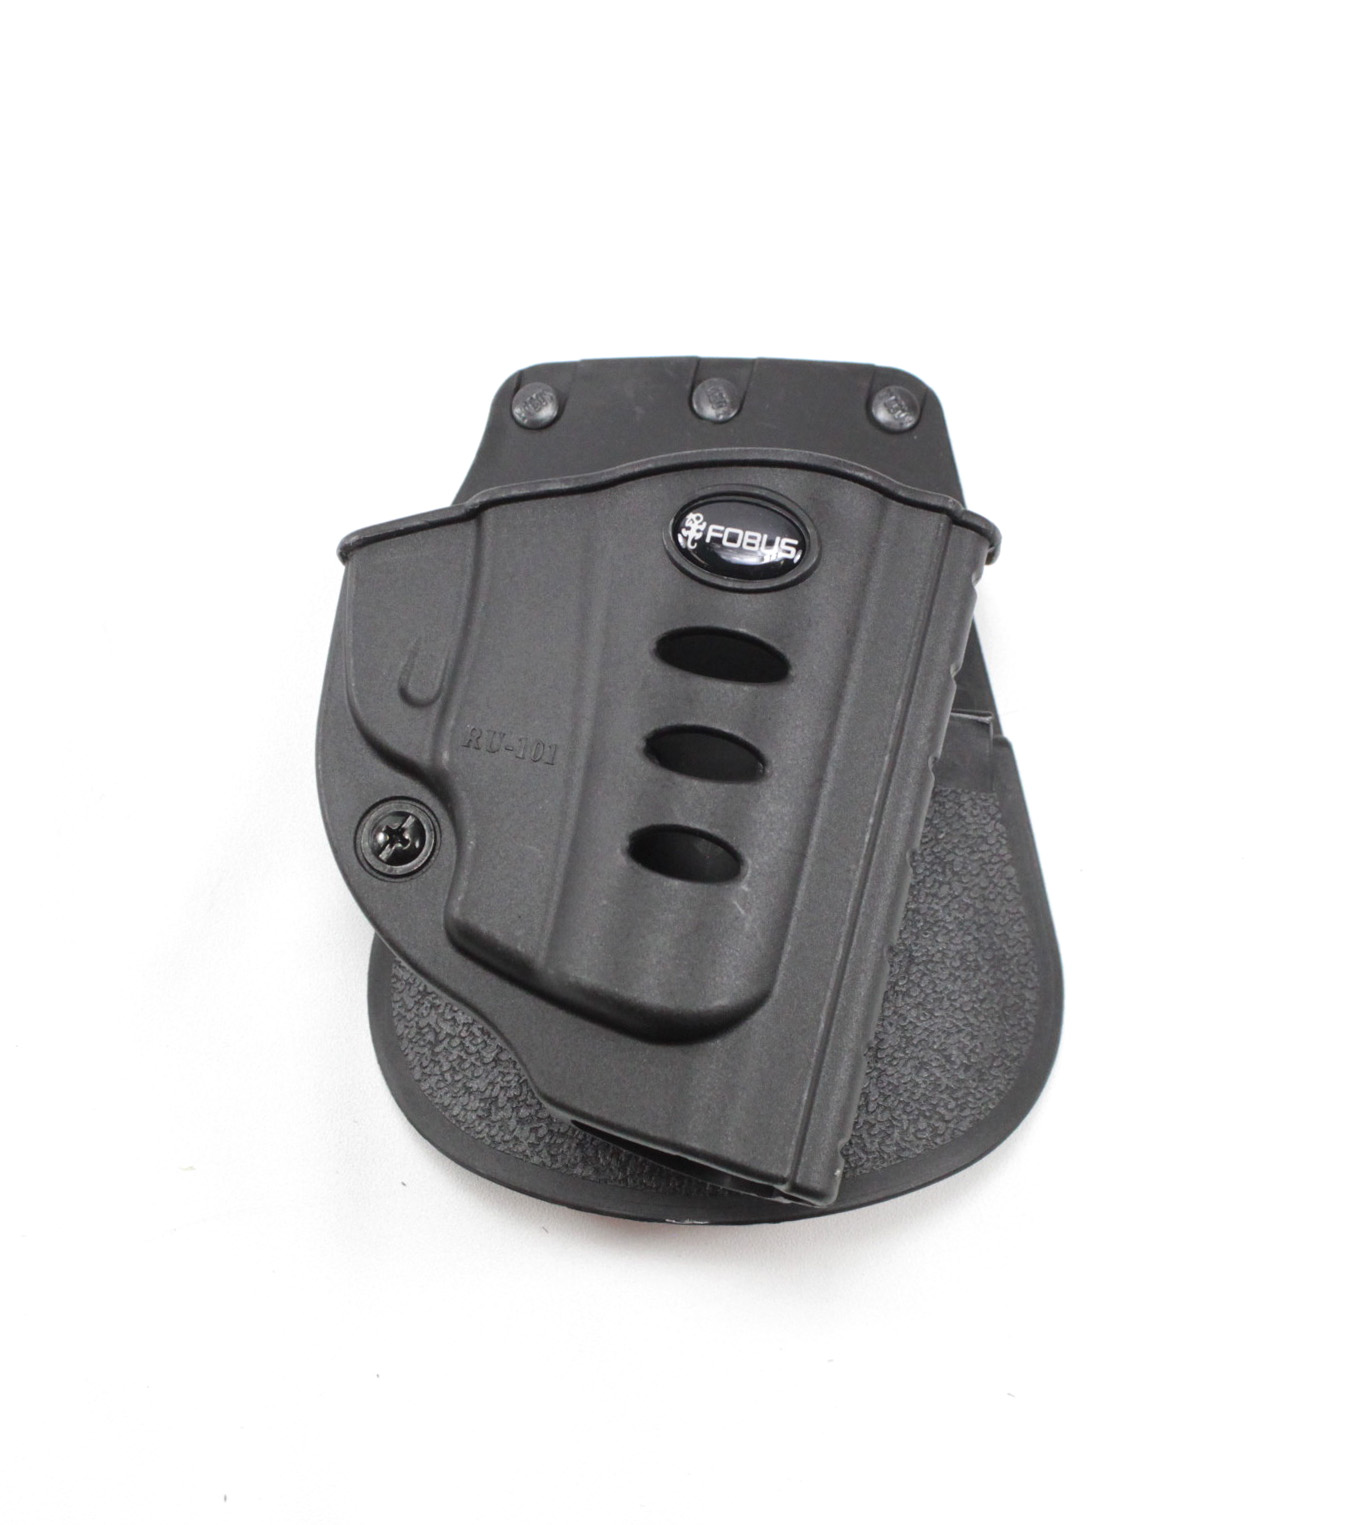 Fobus Paddle Holster Ruger LCR, LCRx, SP101-With Retention Adjustment Screw